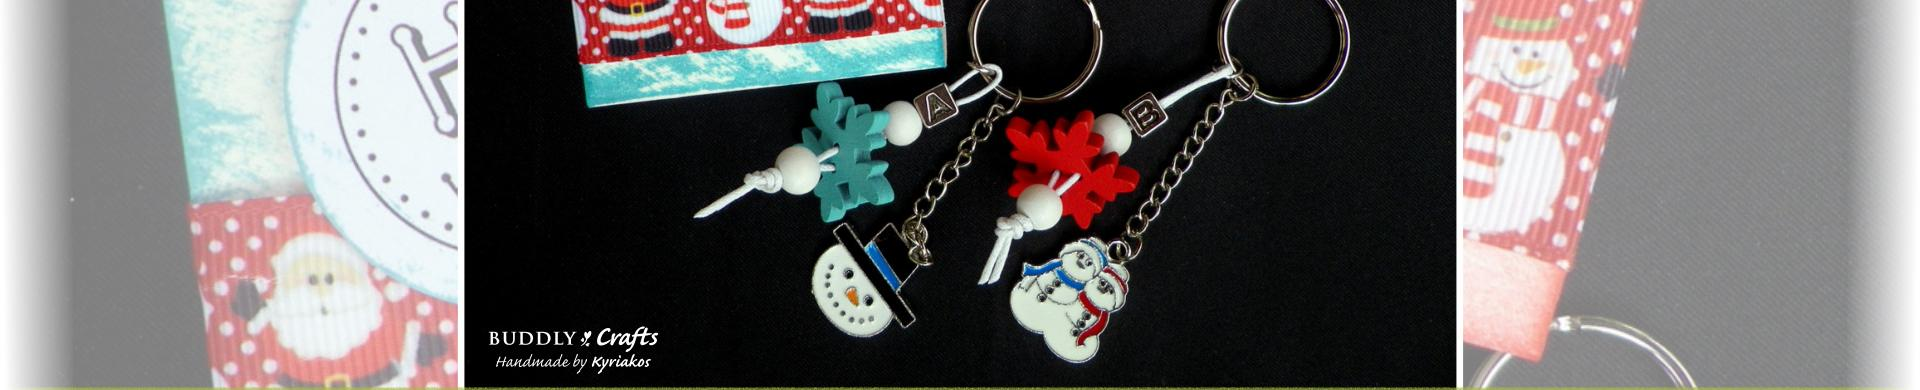 Make Your Own Christmas Keyrings